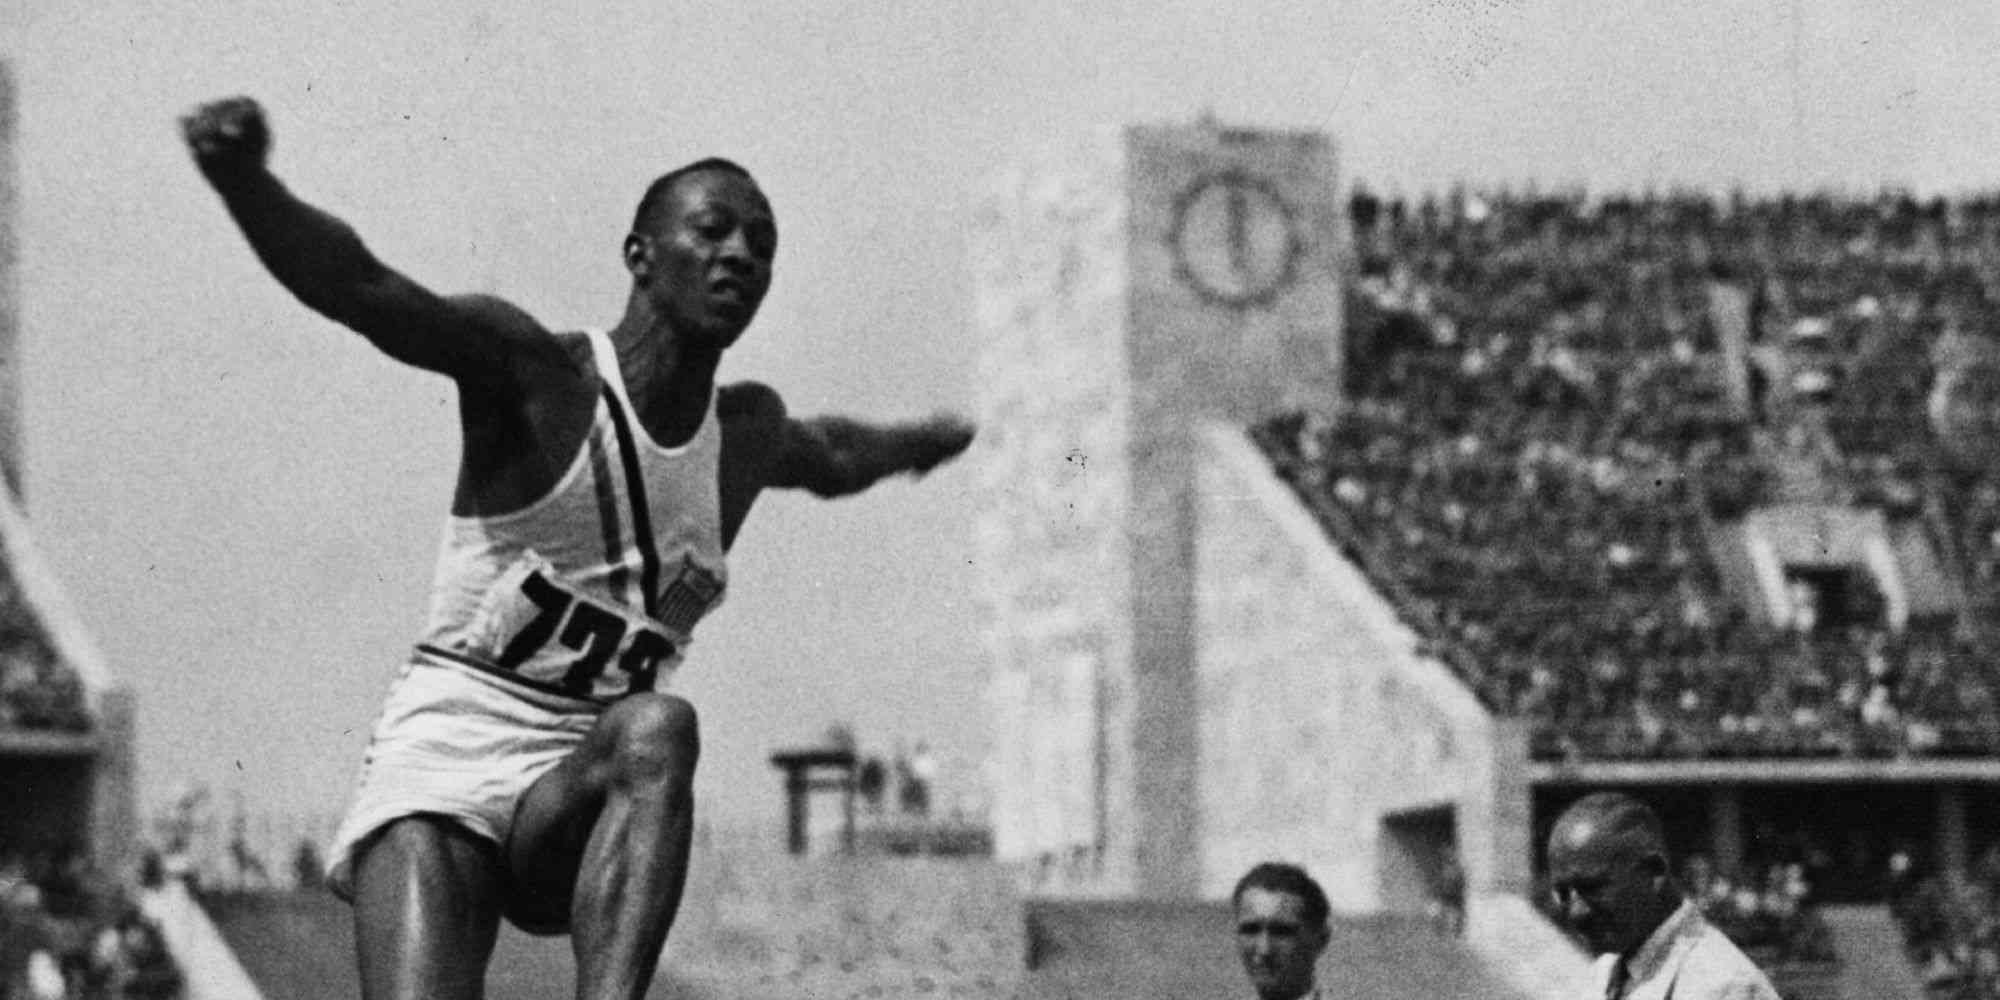 Athlete Jesse Owens (1913 - 1980) flies through the air during the long jump event at the Olympic Games in Berlin. He won 4 gold medals and Hitler left the stadium to avoid having to congratulate a black competitor.